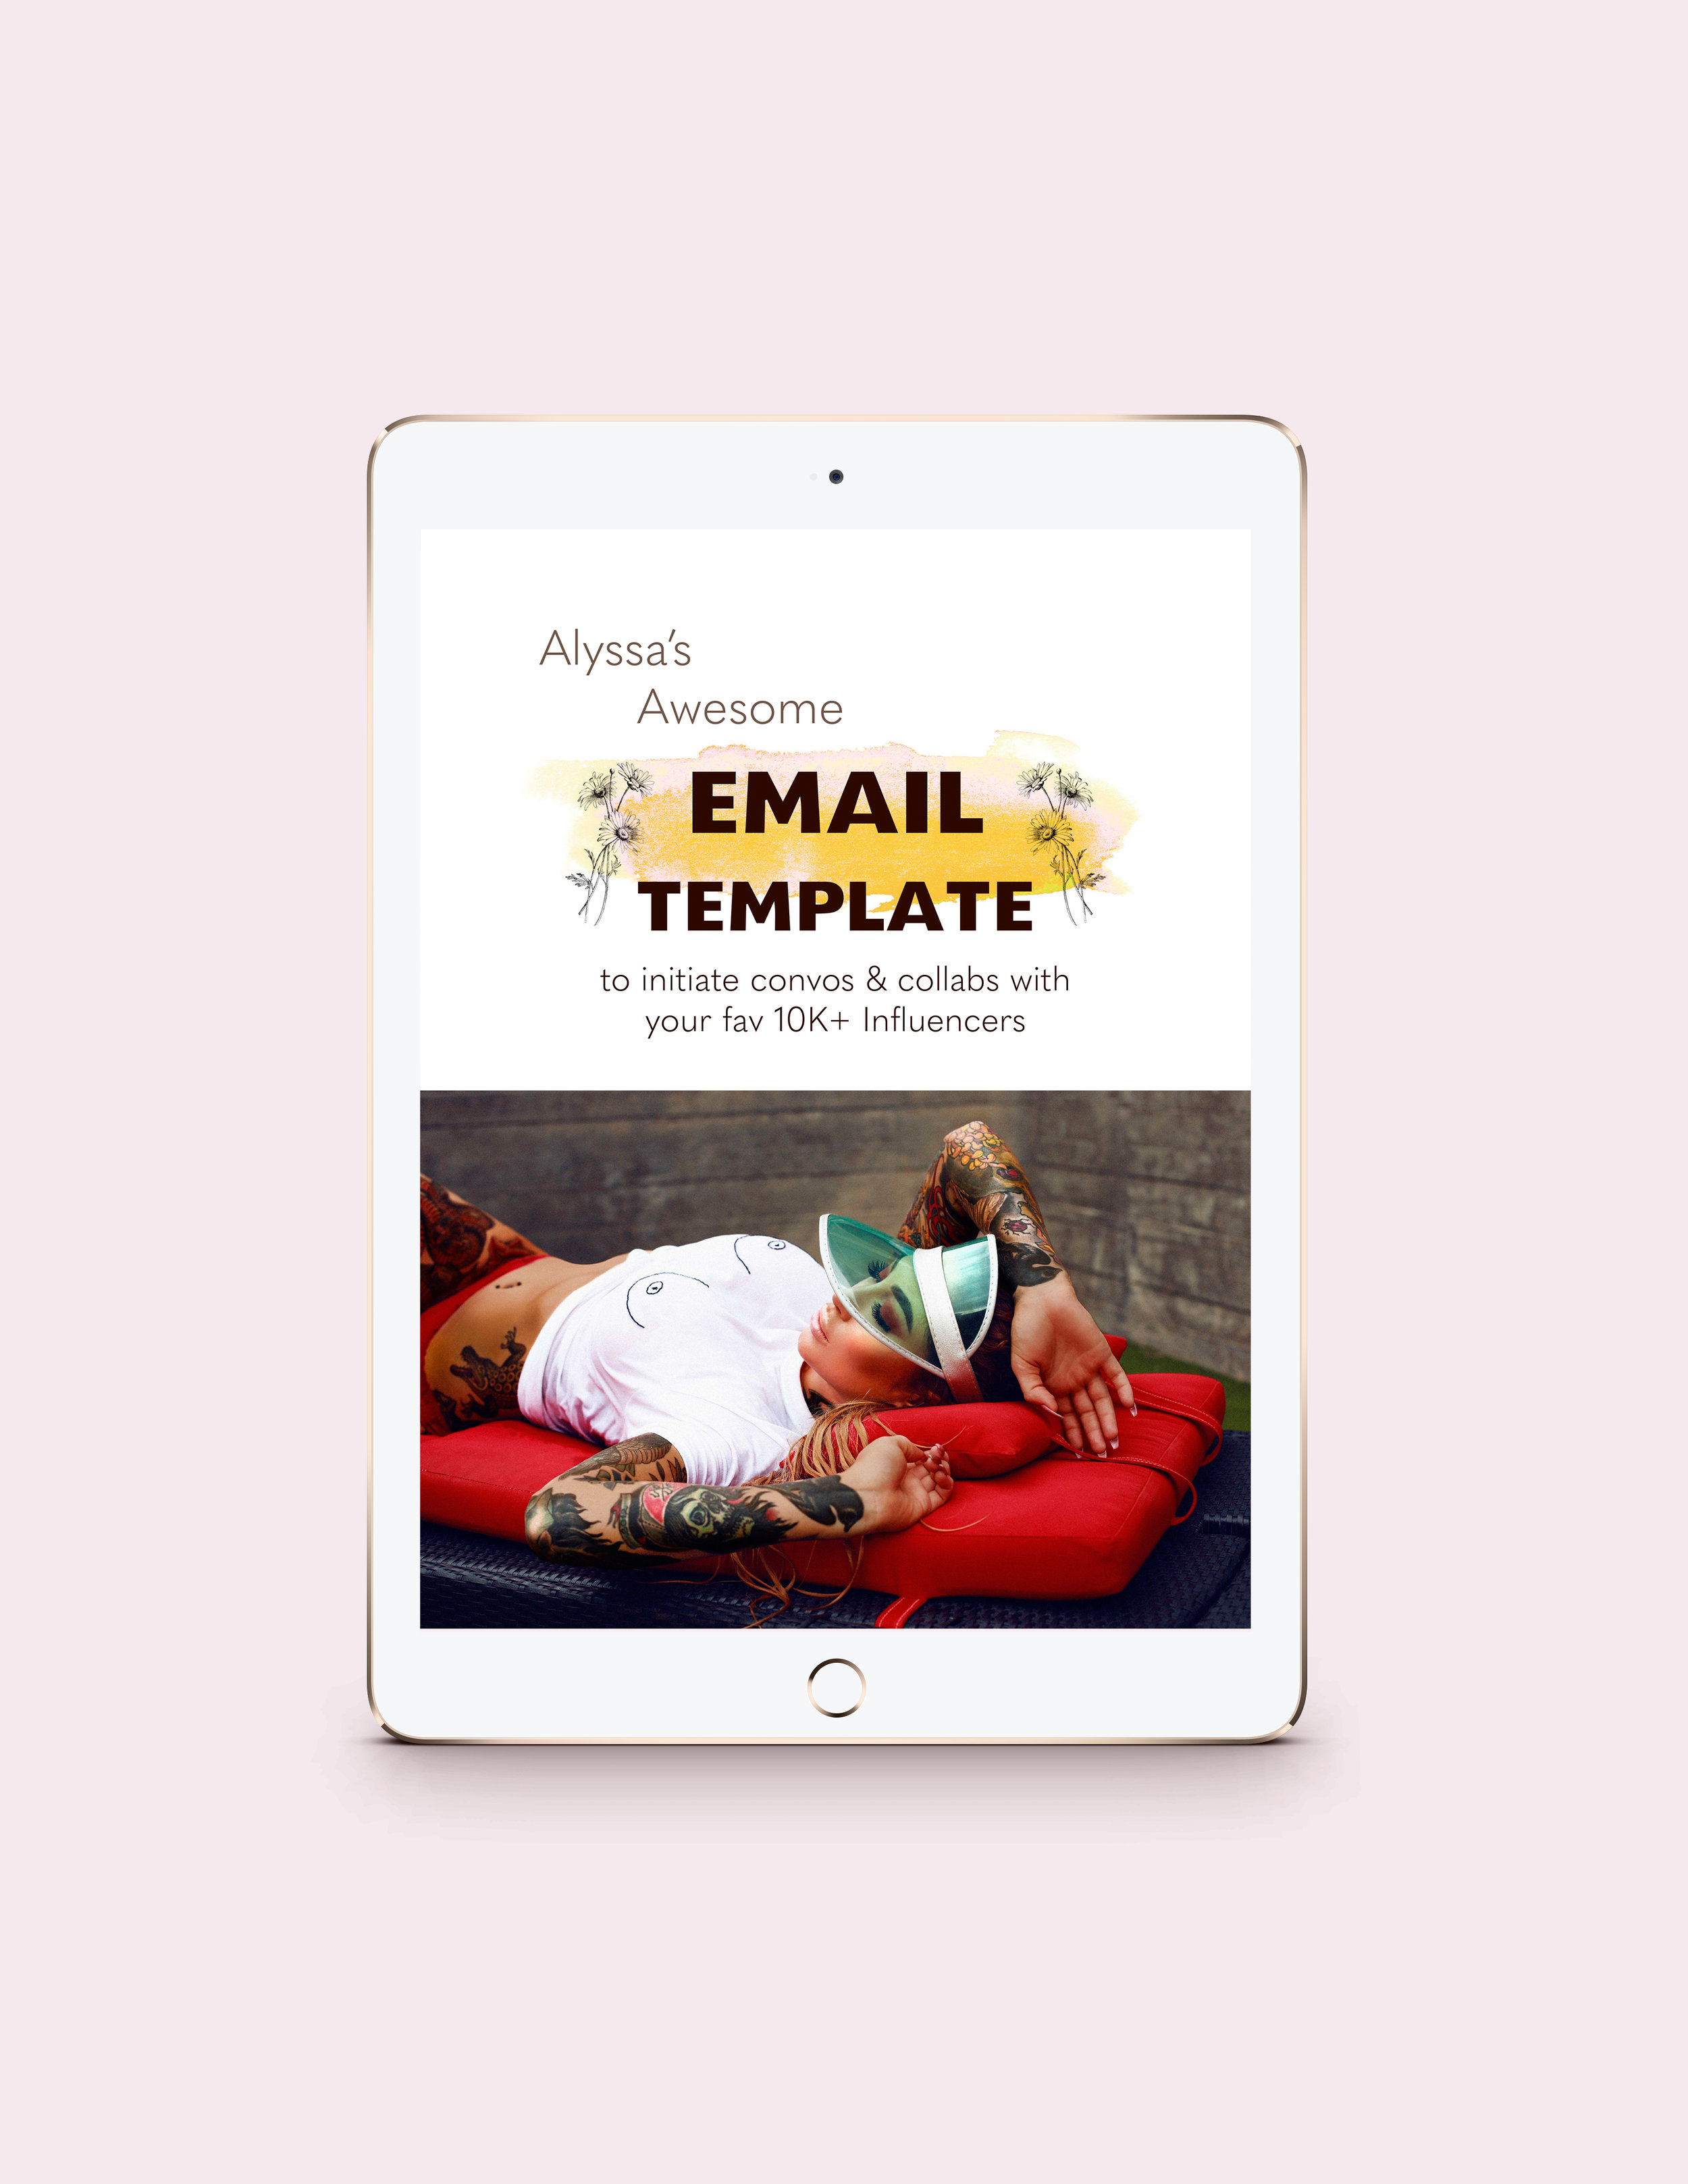 Awesome Email Template - To make contact with your FAV 10K+ Influencer!